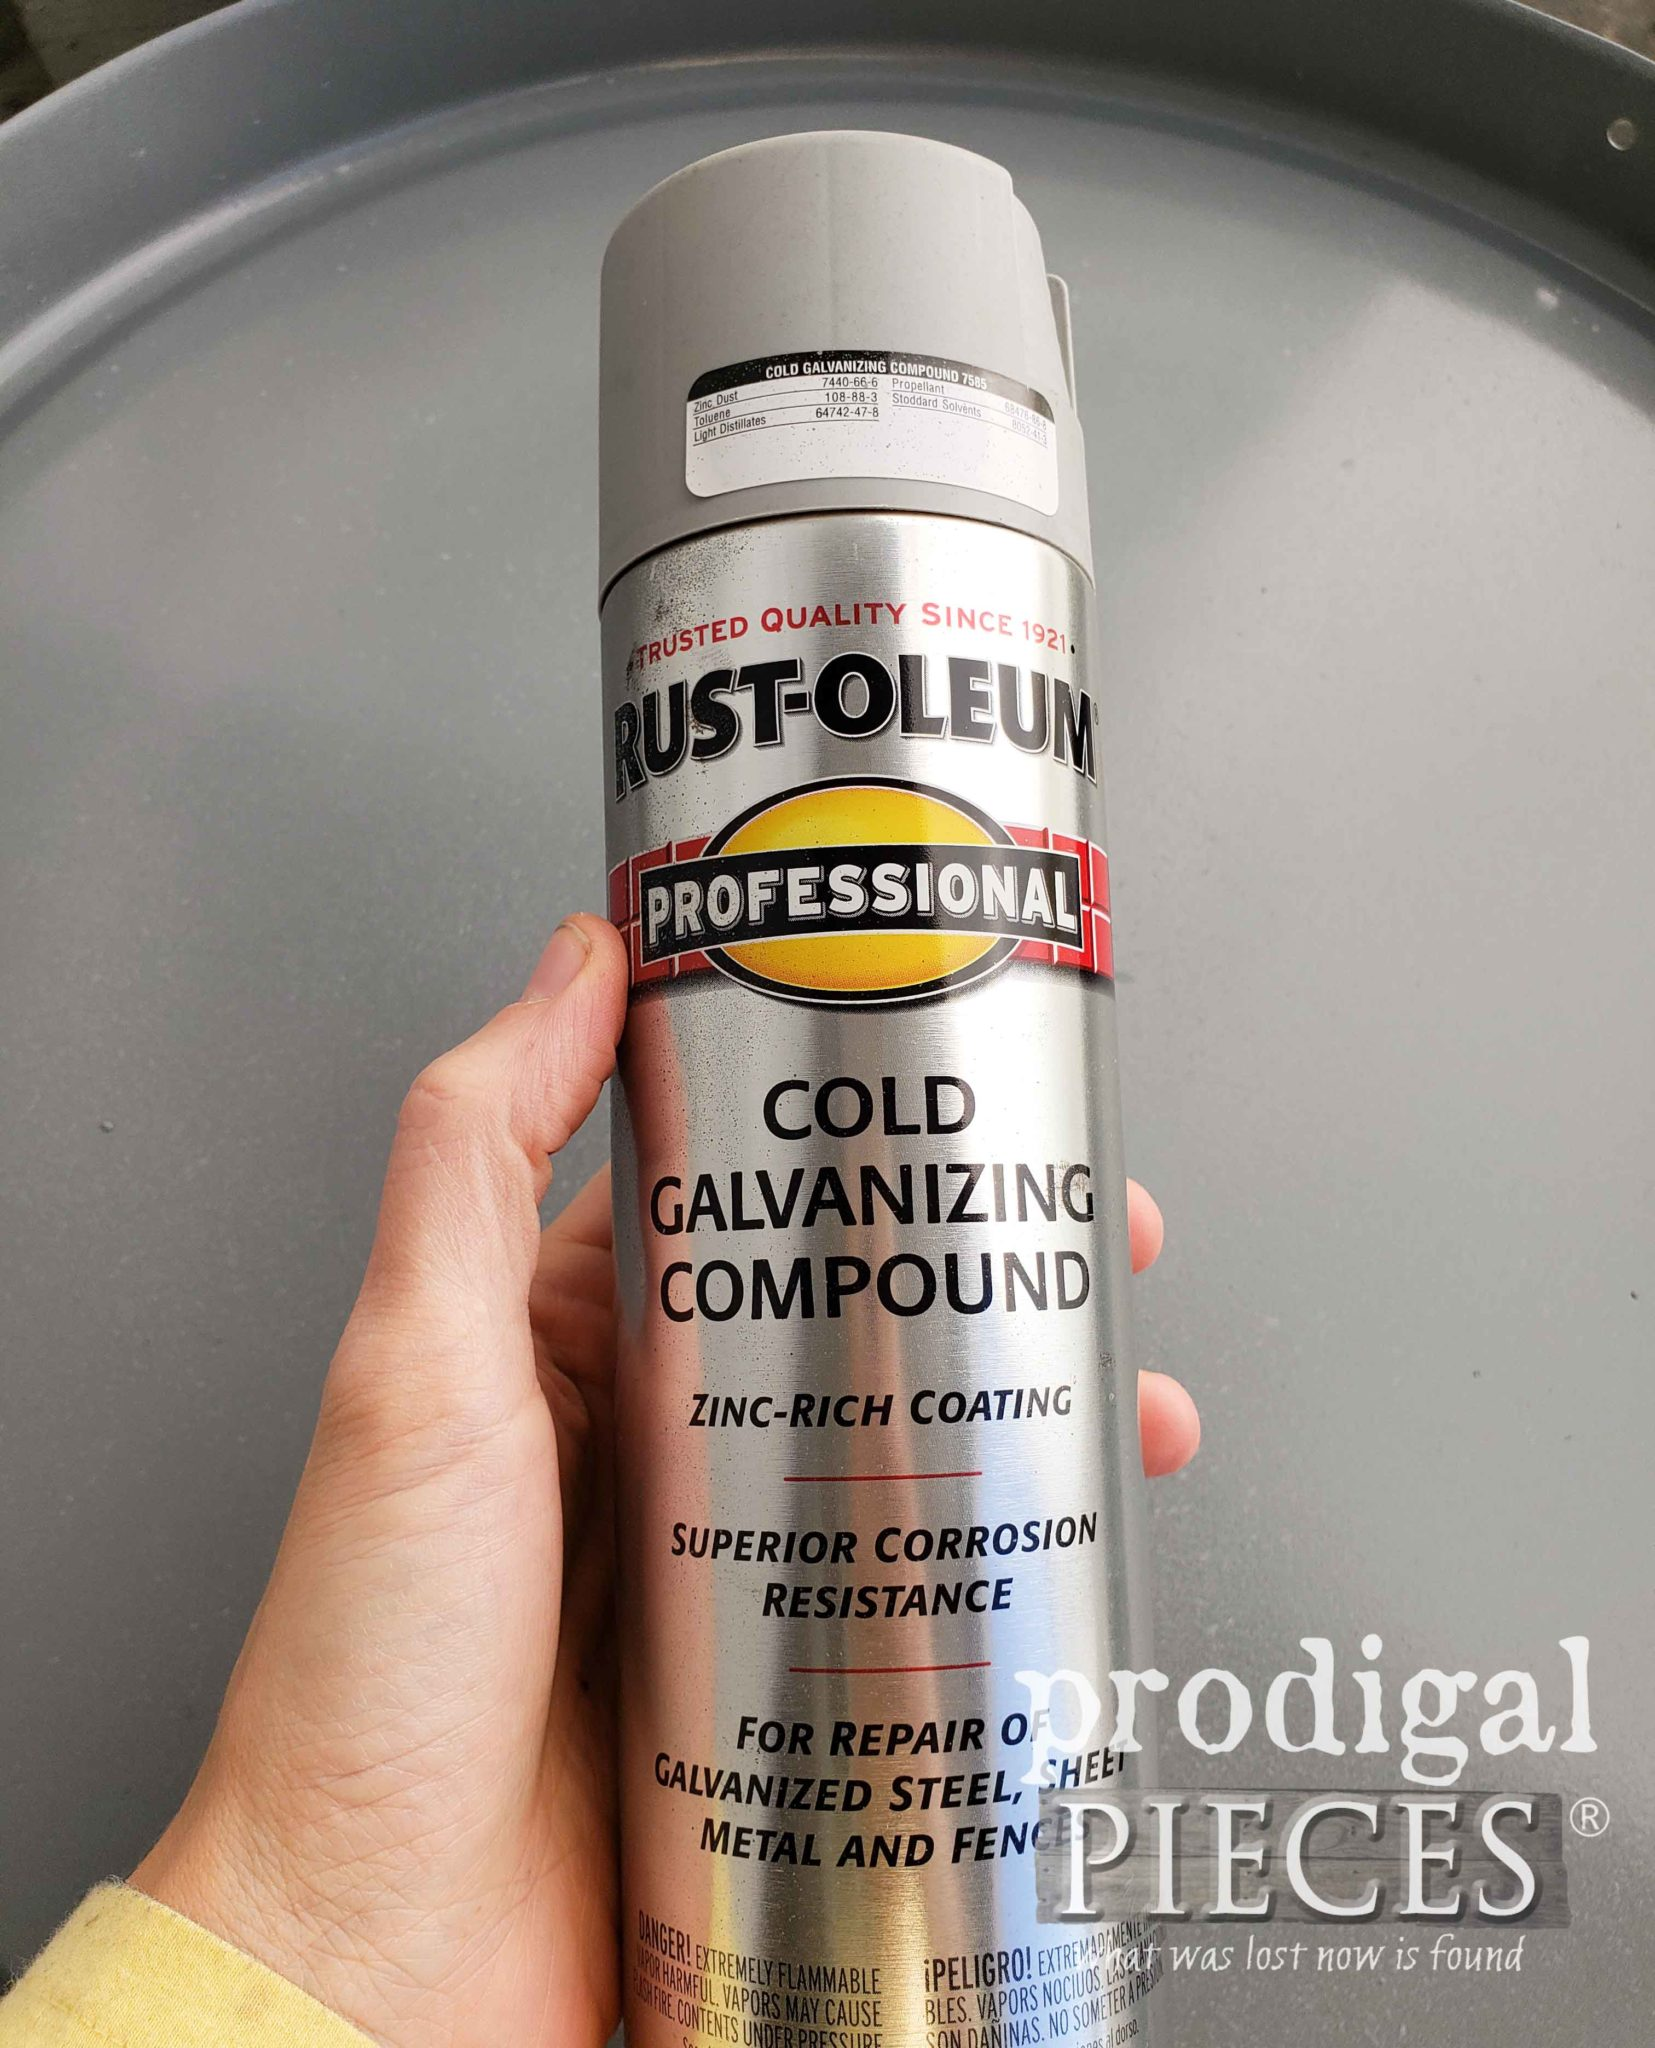 Rustoleum Cold Galvanizing Compound for Zinc Effect by Larissa of Prodigal Pieces | prodigalpieces.com